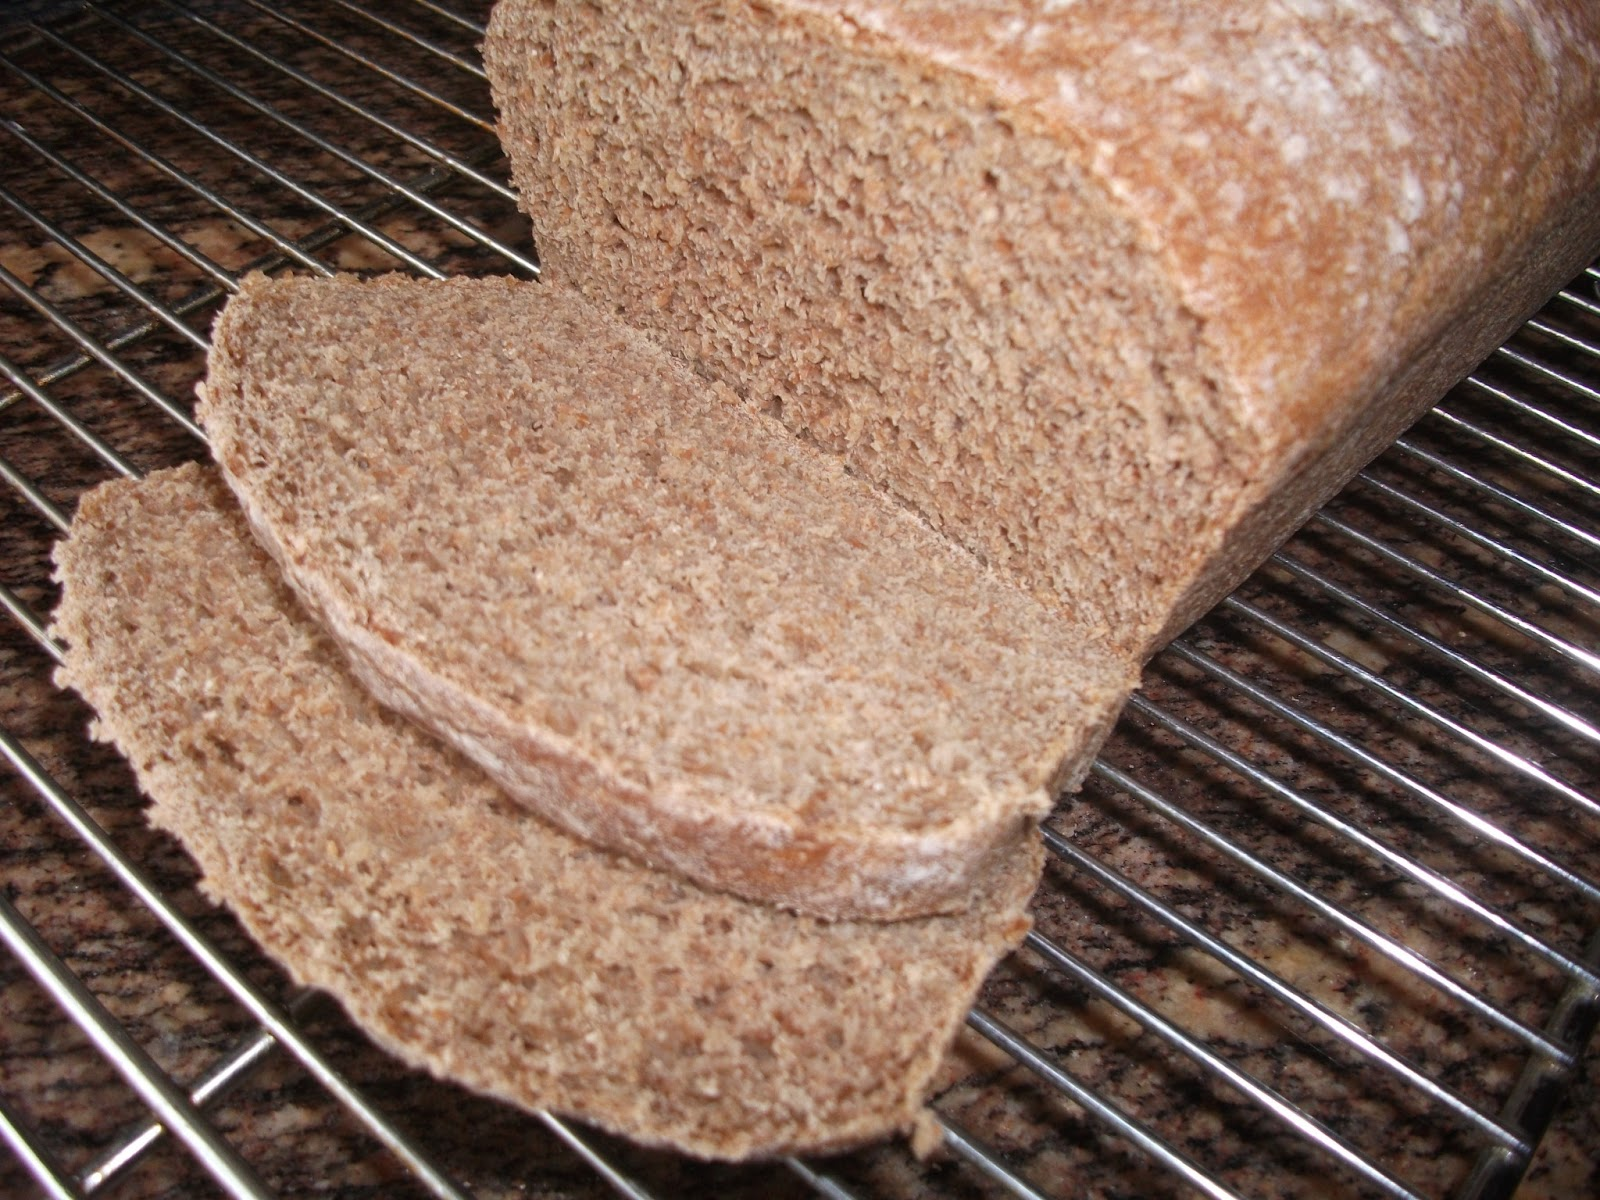 how to cook wheat bran